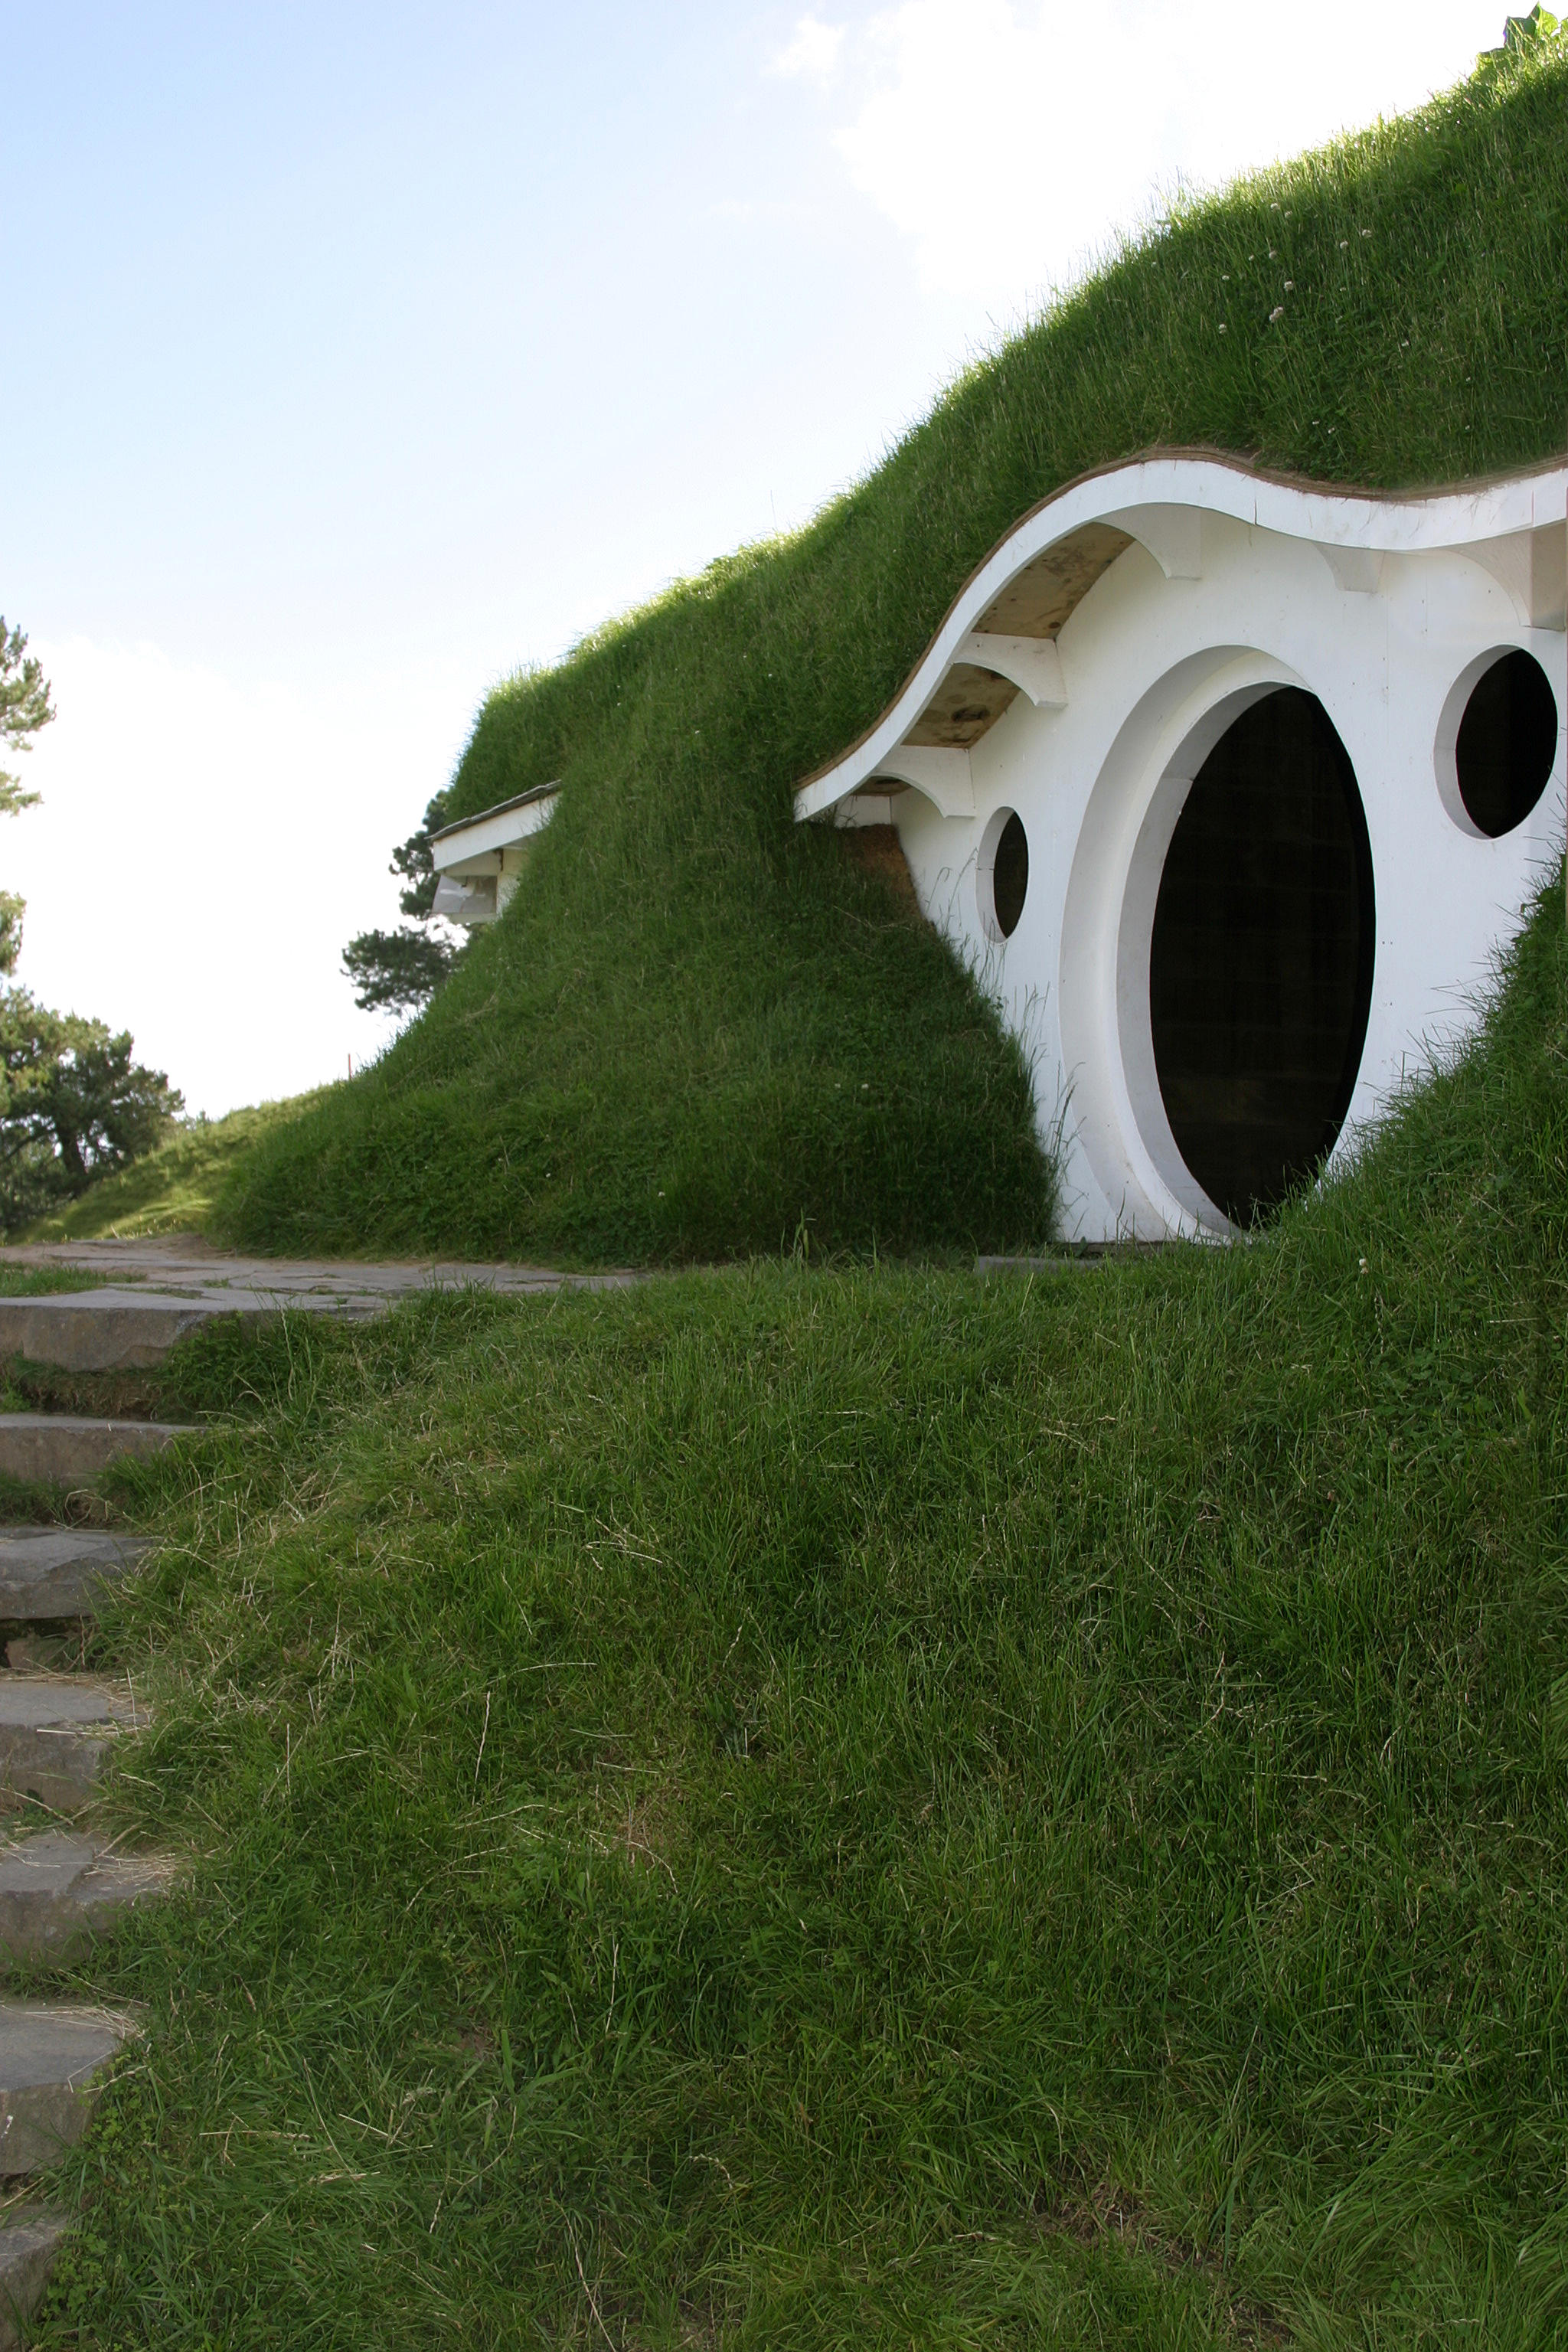 Hobbit Hole 1 by Rivendell-PhotoStock